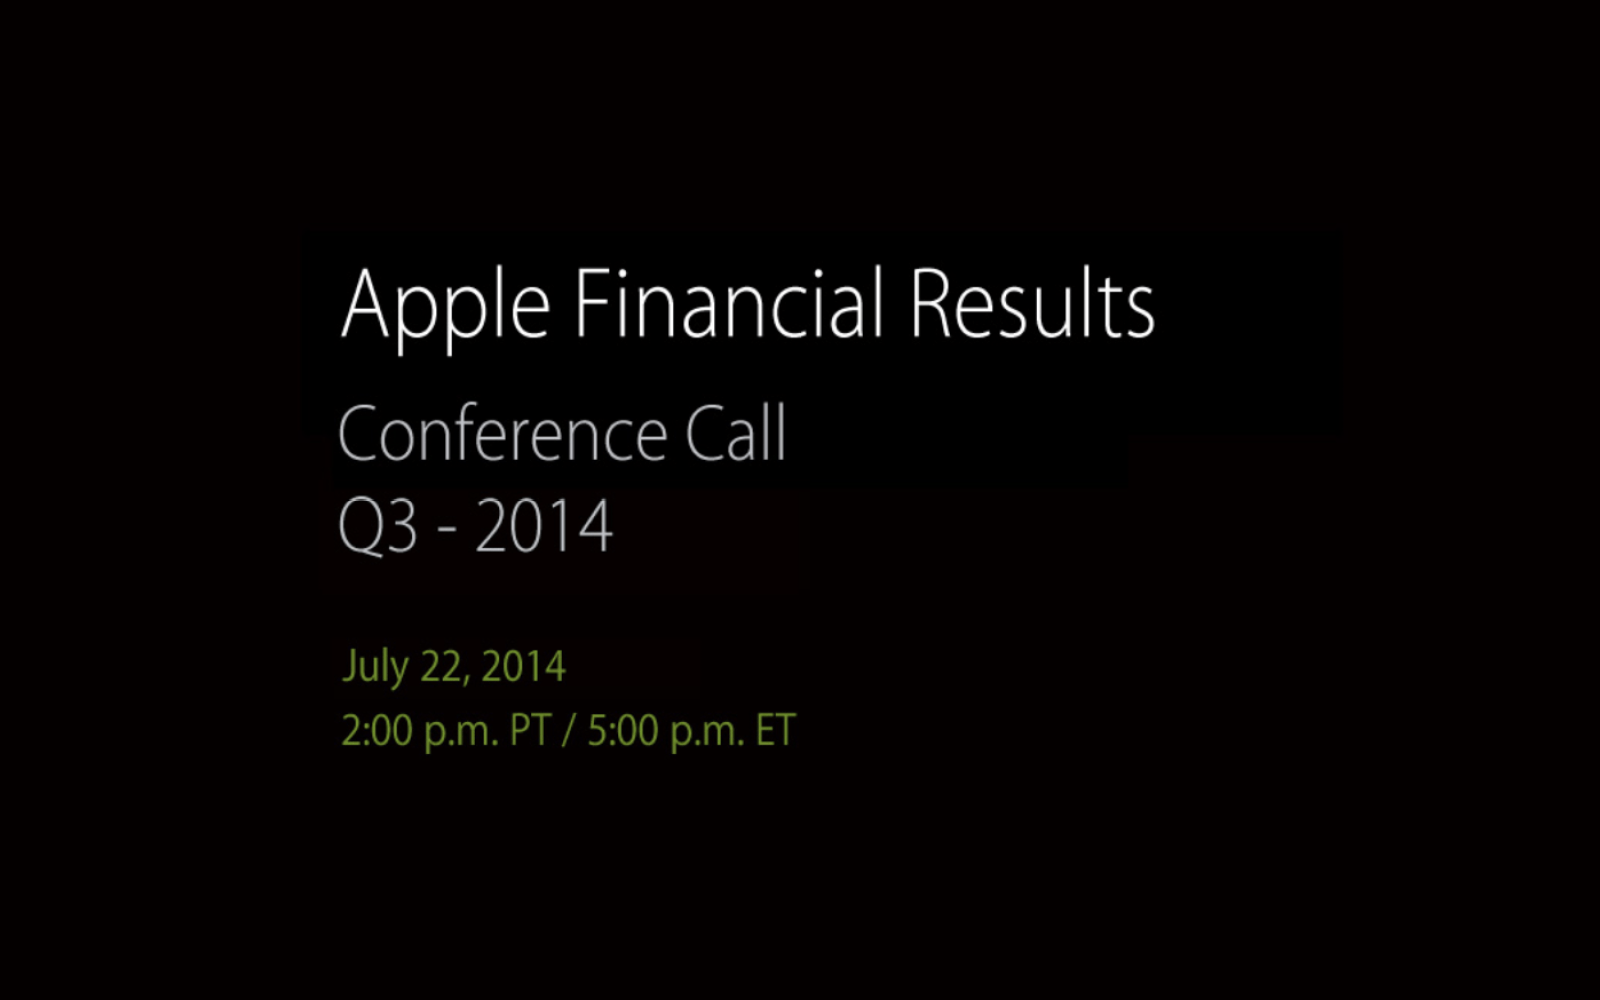 Apple to announce Q3 2014 earnings results on July 22nd